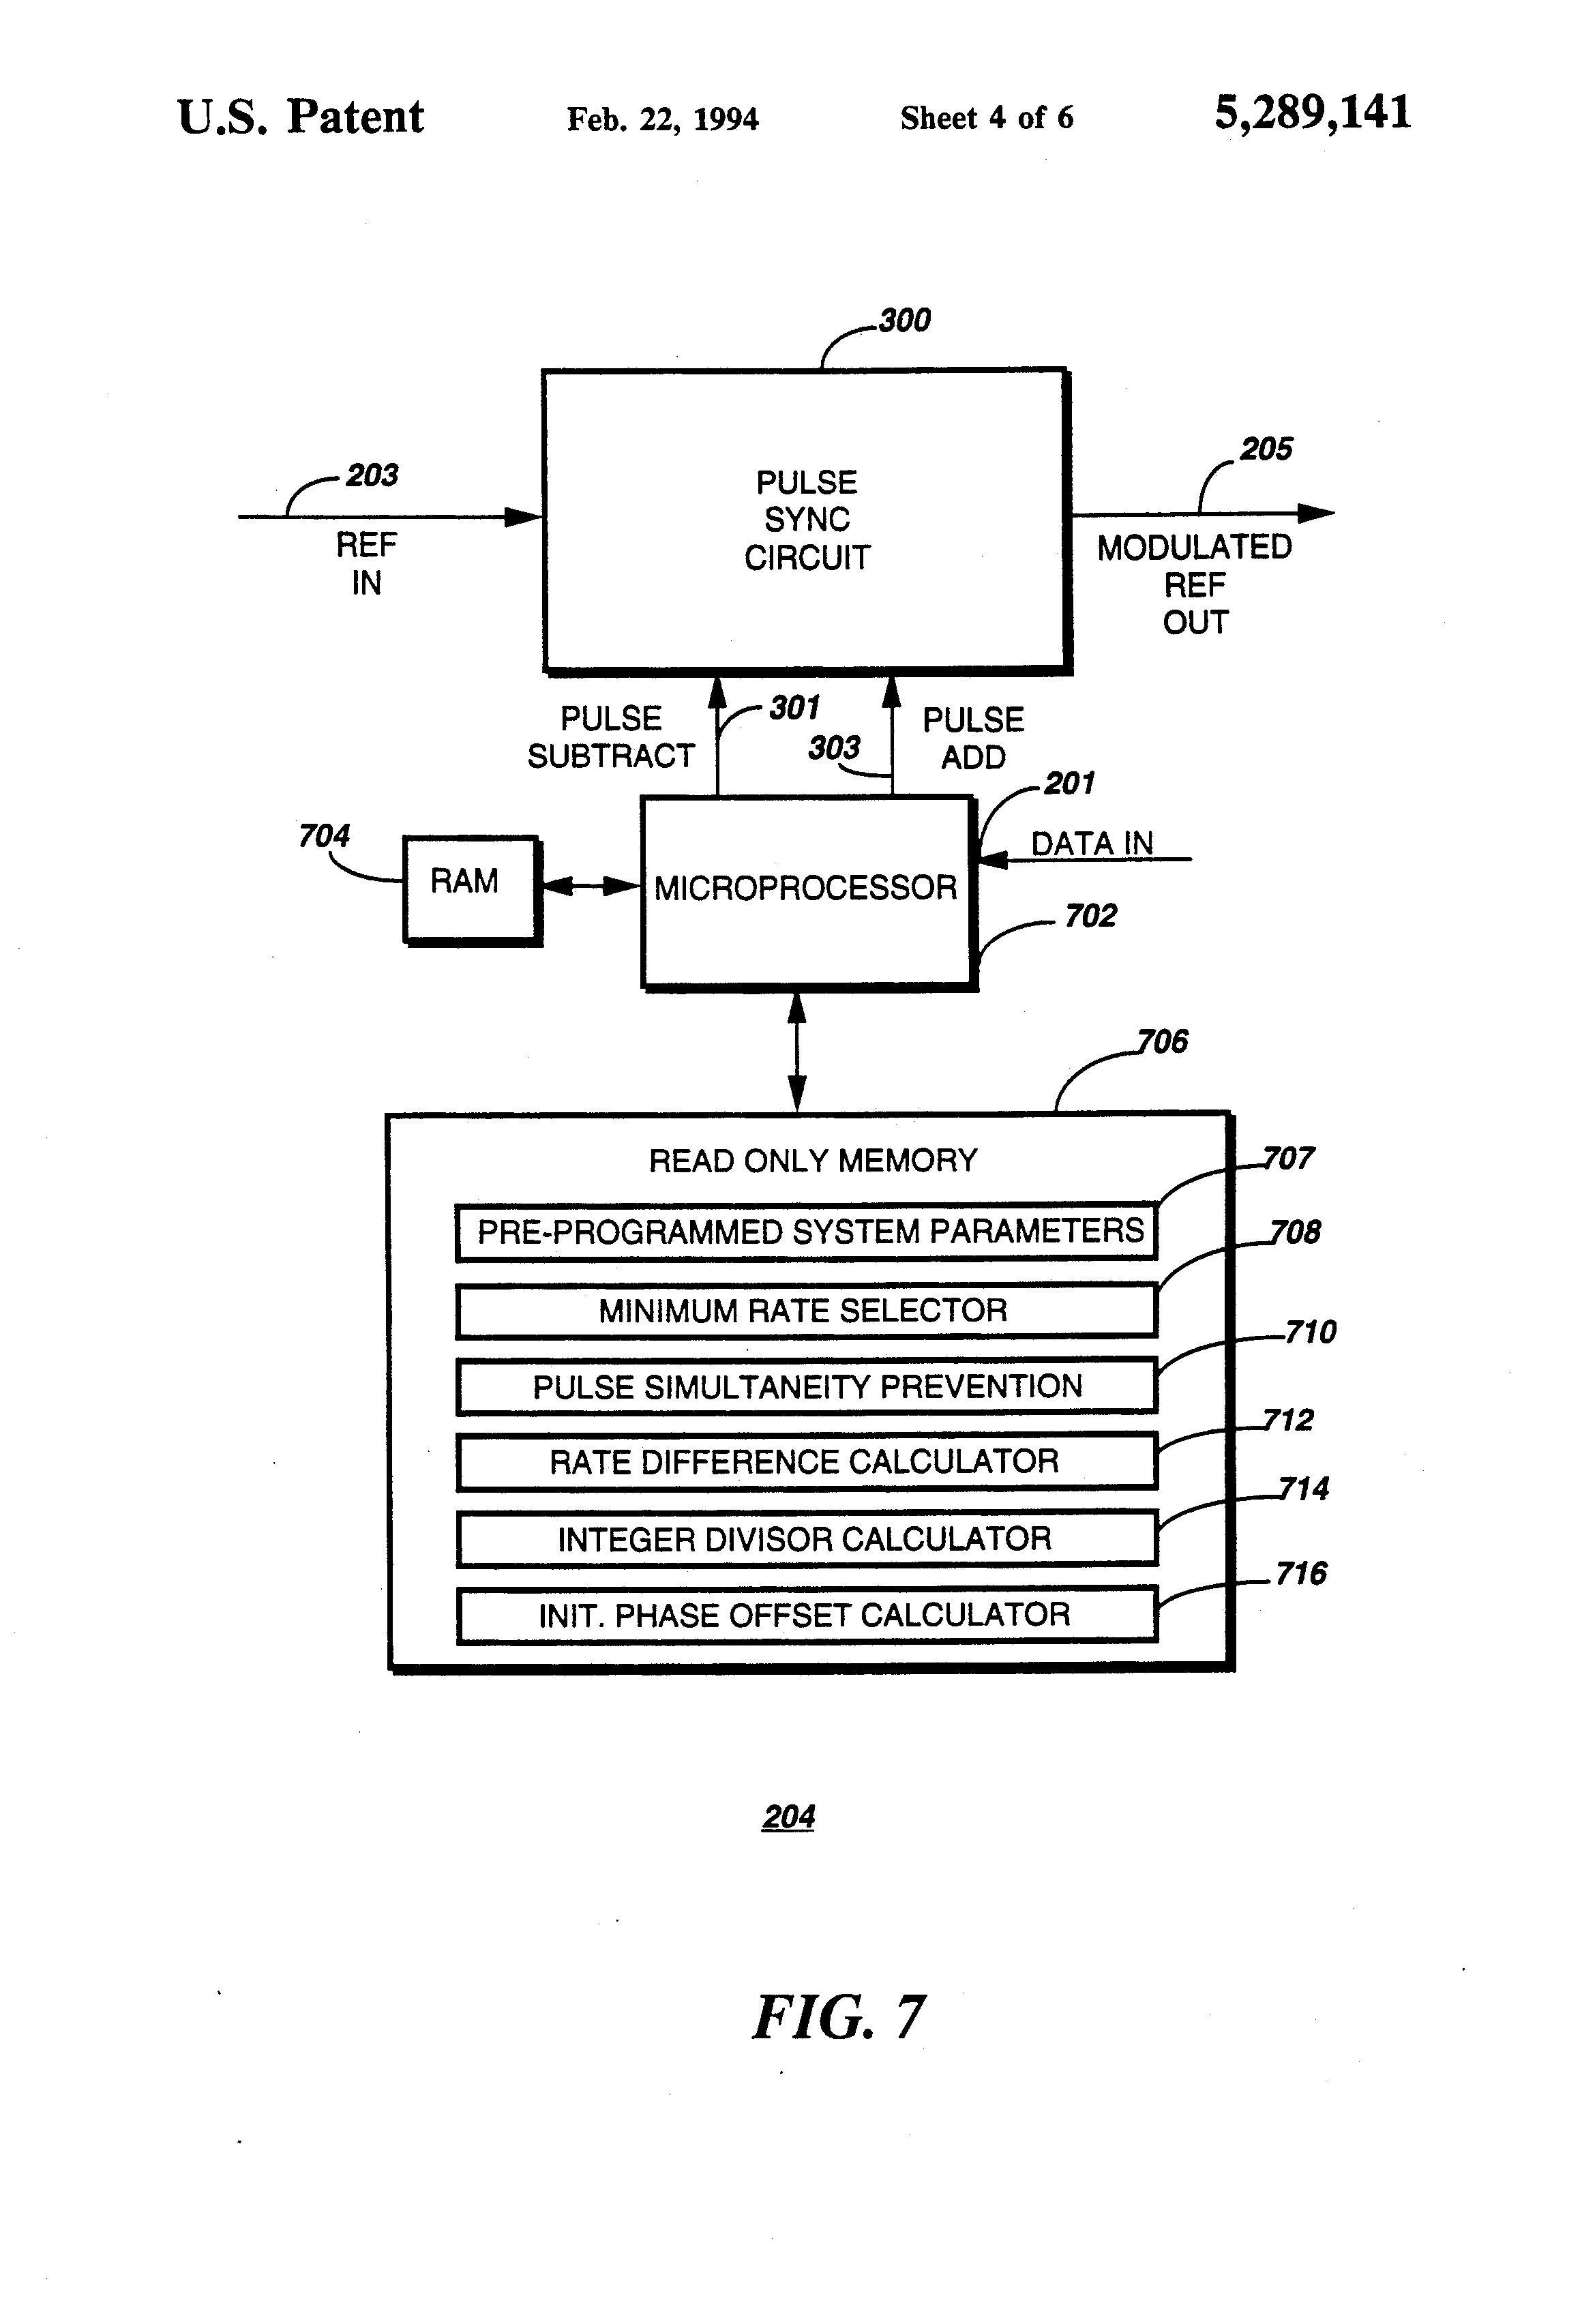 Patent Us5289141 Method And Apparatus For Digital Modulation Using Mc145170 Pll Fm Transmitter Drawing